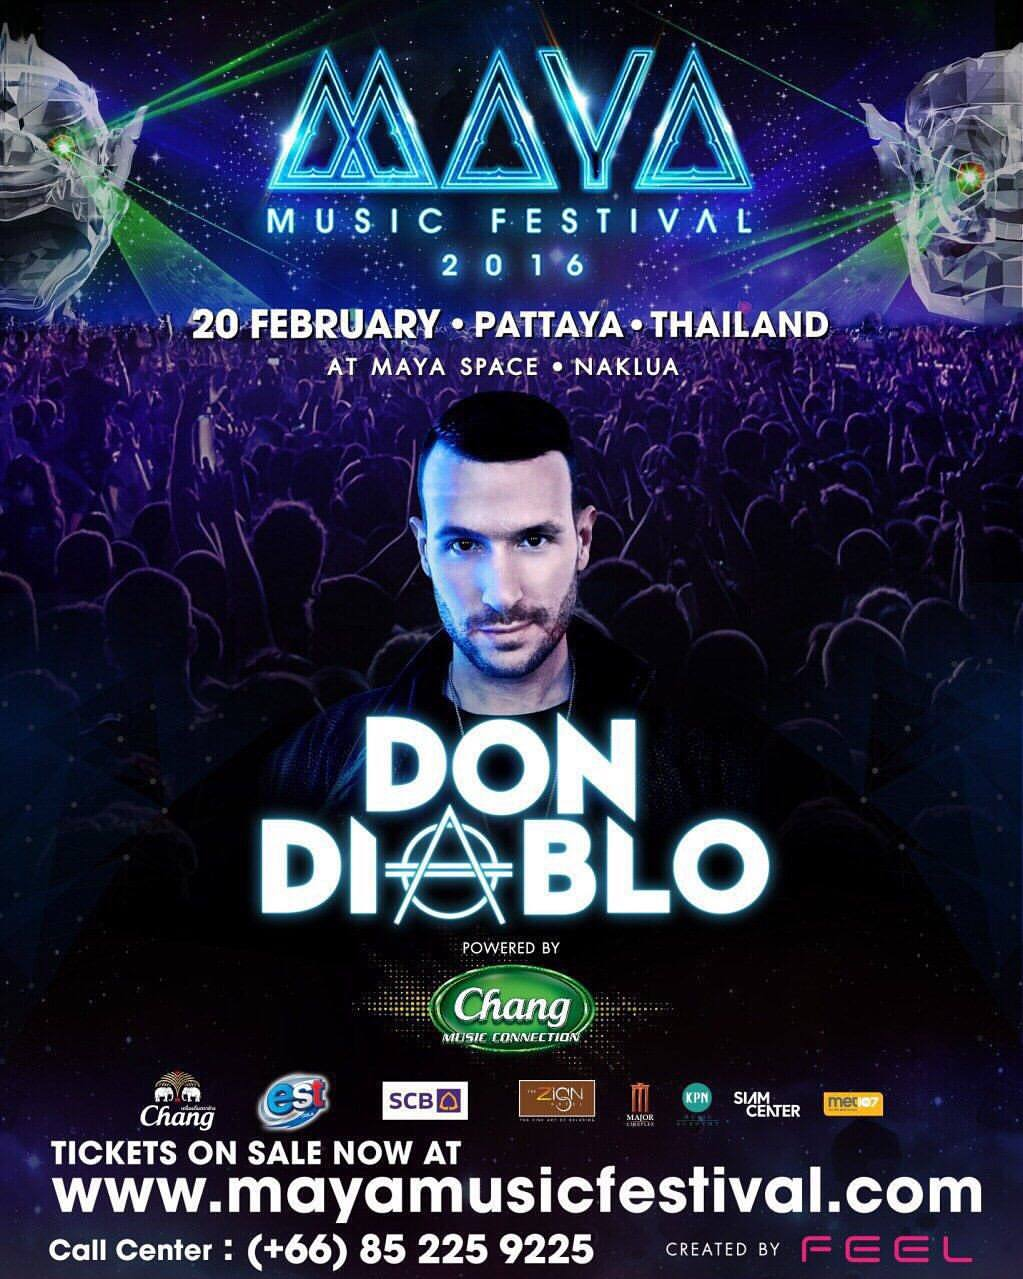 MAYA Music festival   Don Diablo